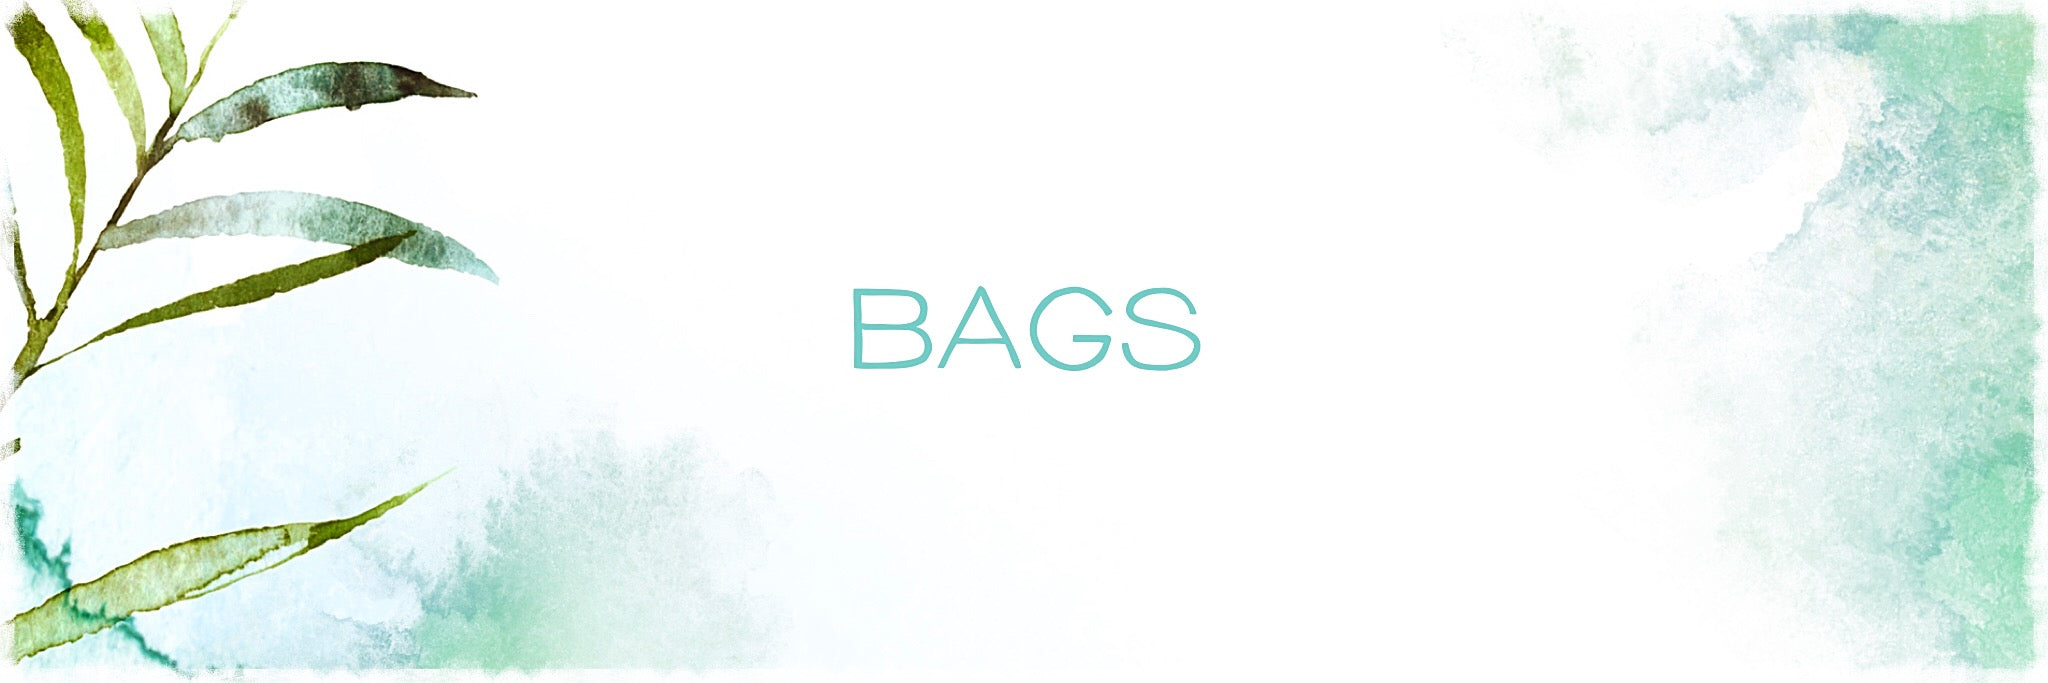 Bags-Soul Of The Rose www.souloftherose.com